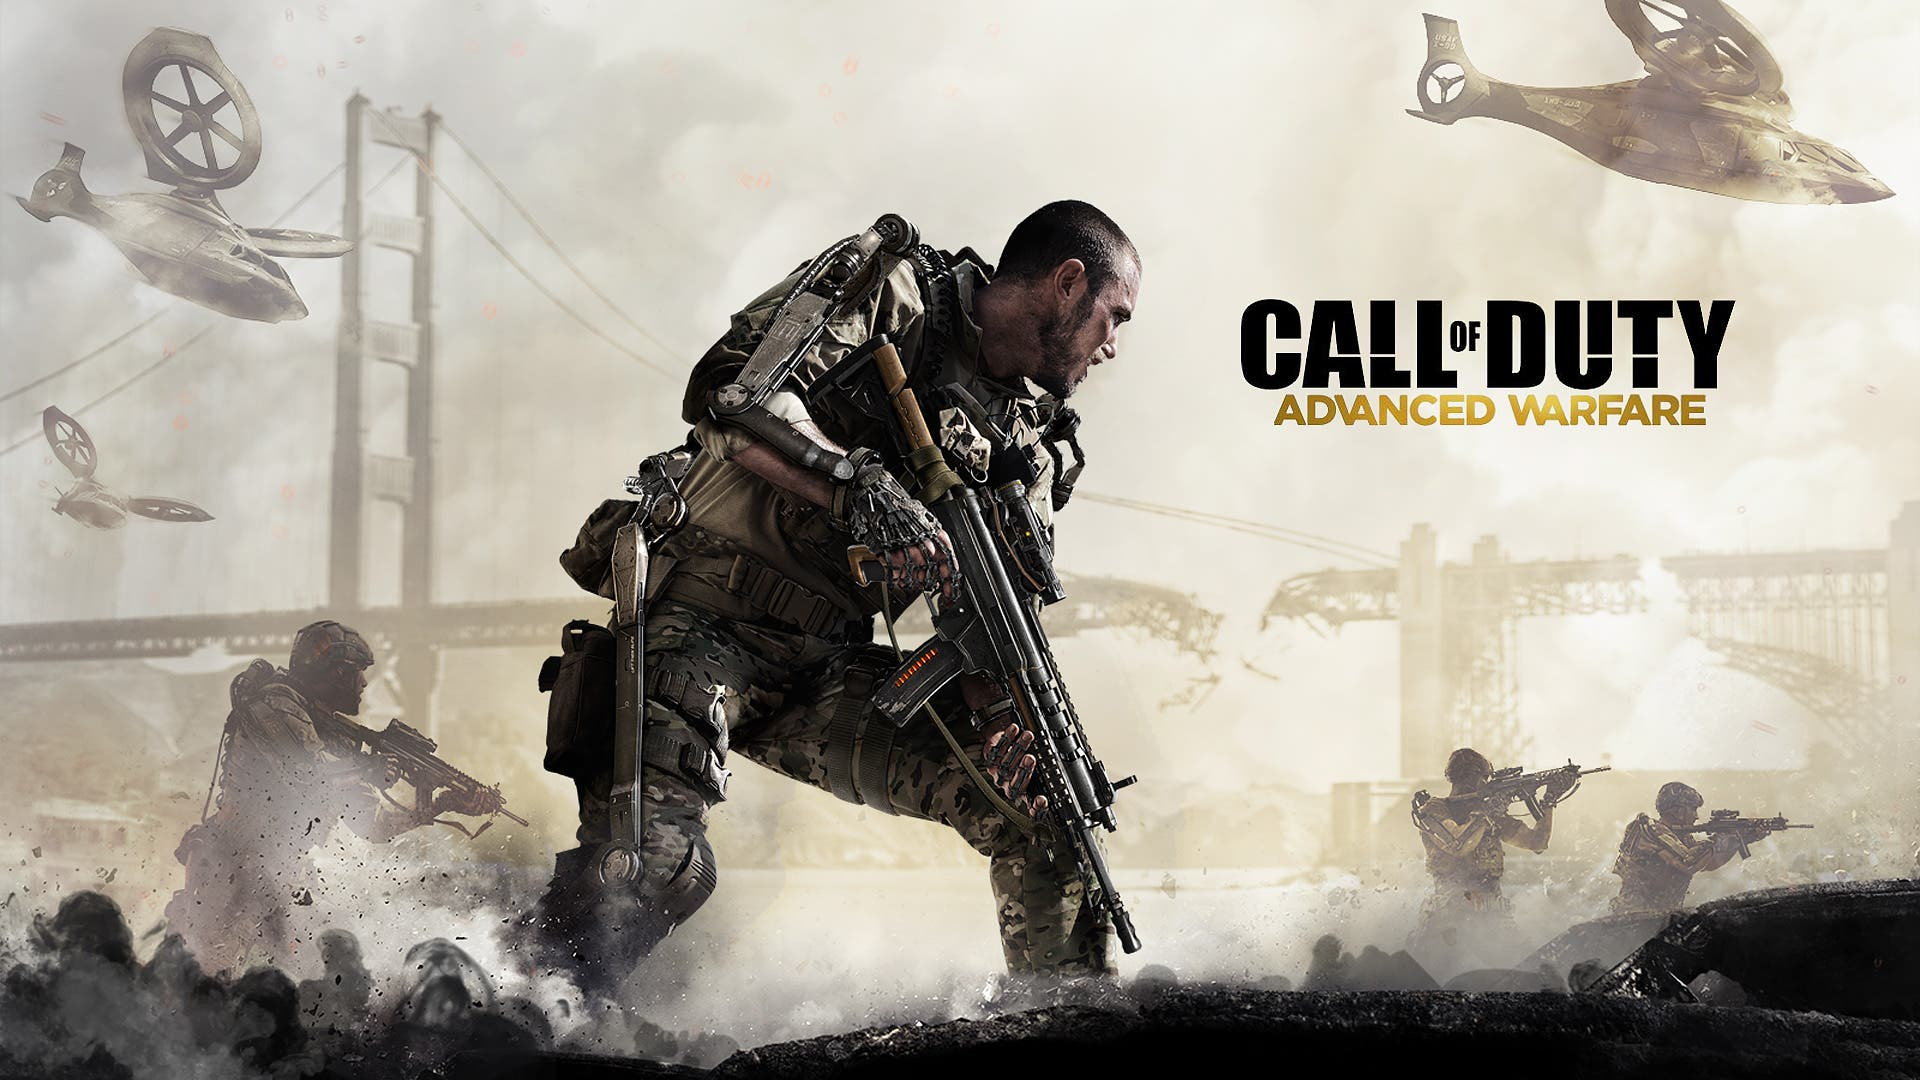 La página oficial de 'Call of Duty: Advanced Warfare' menciona a Wii U en el código fuente